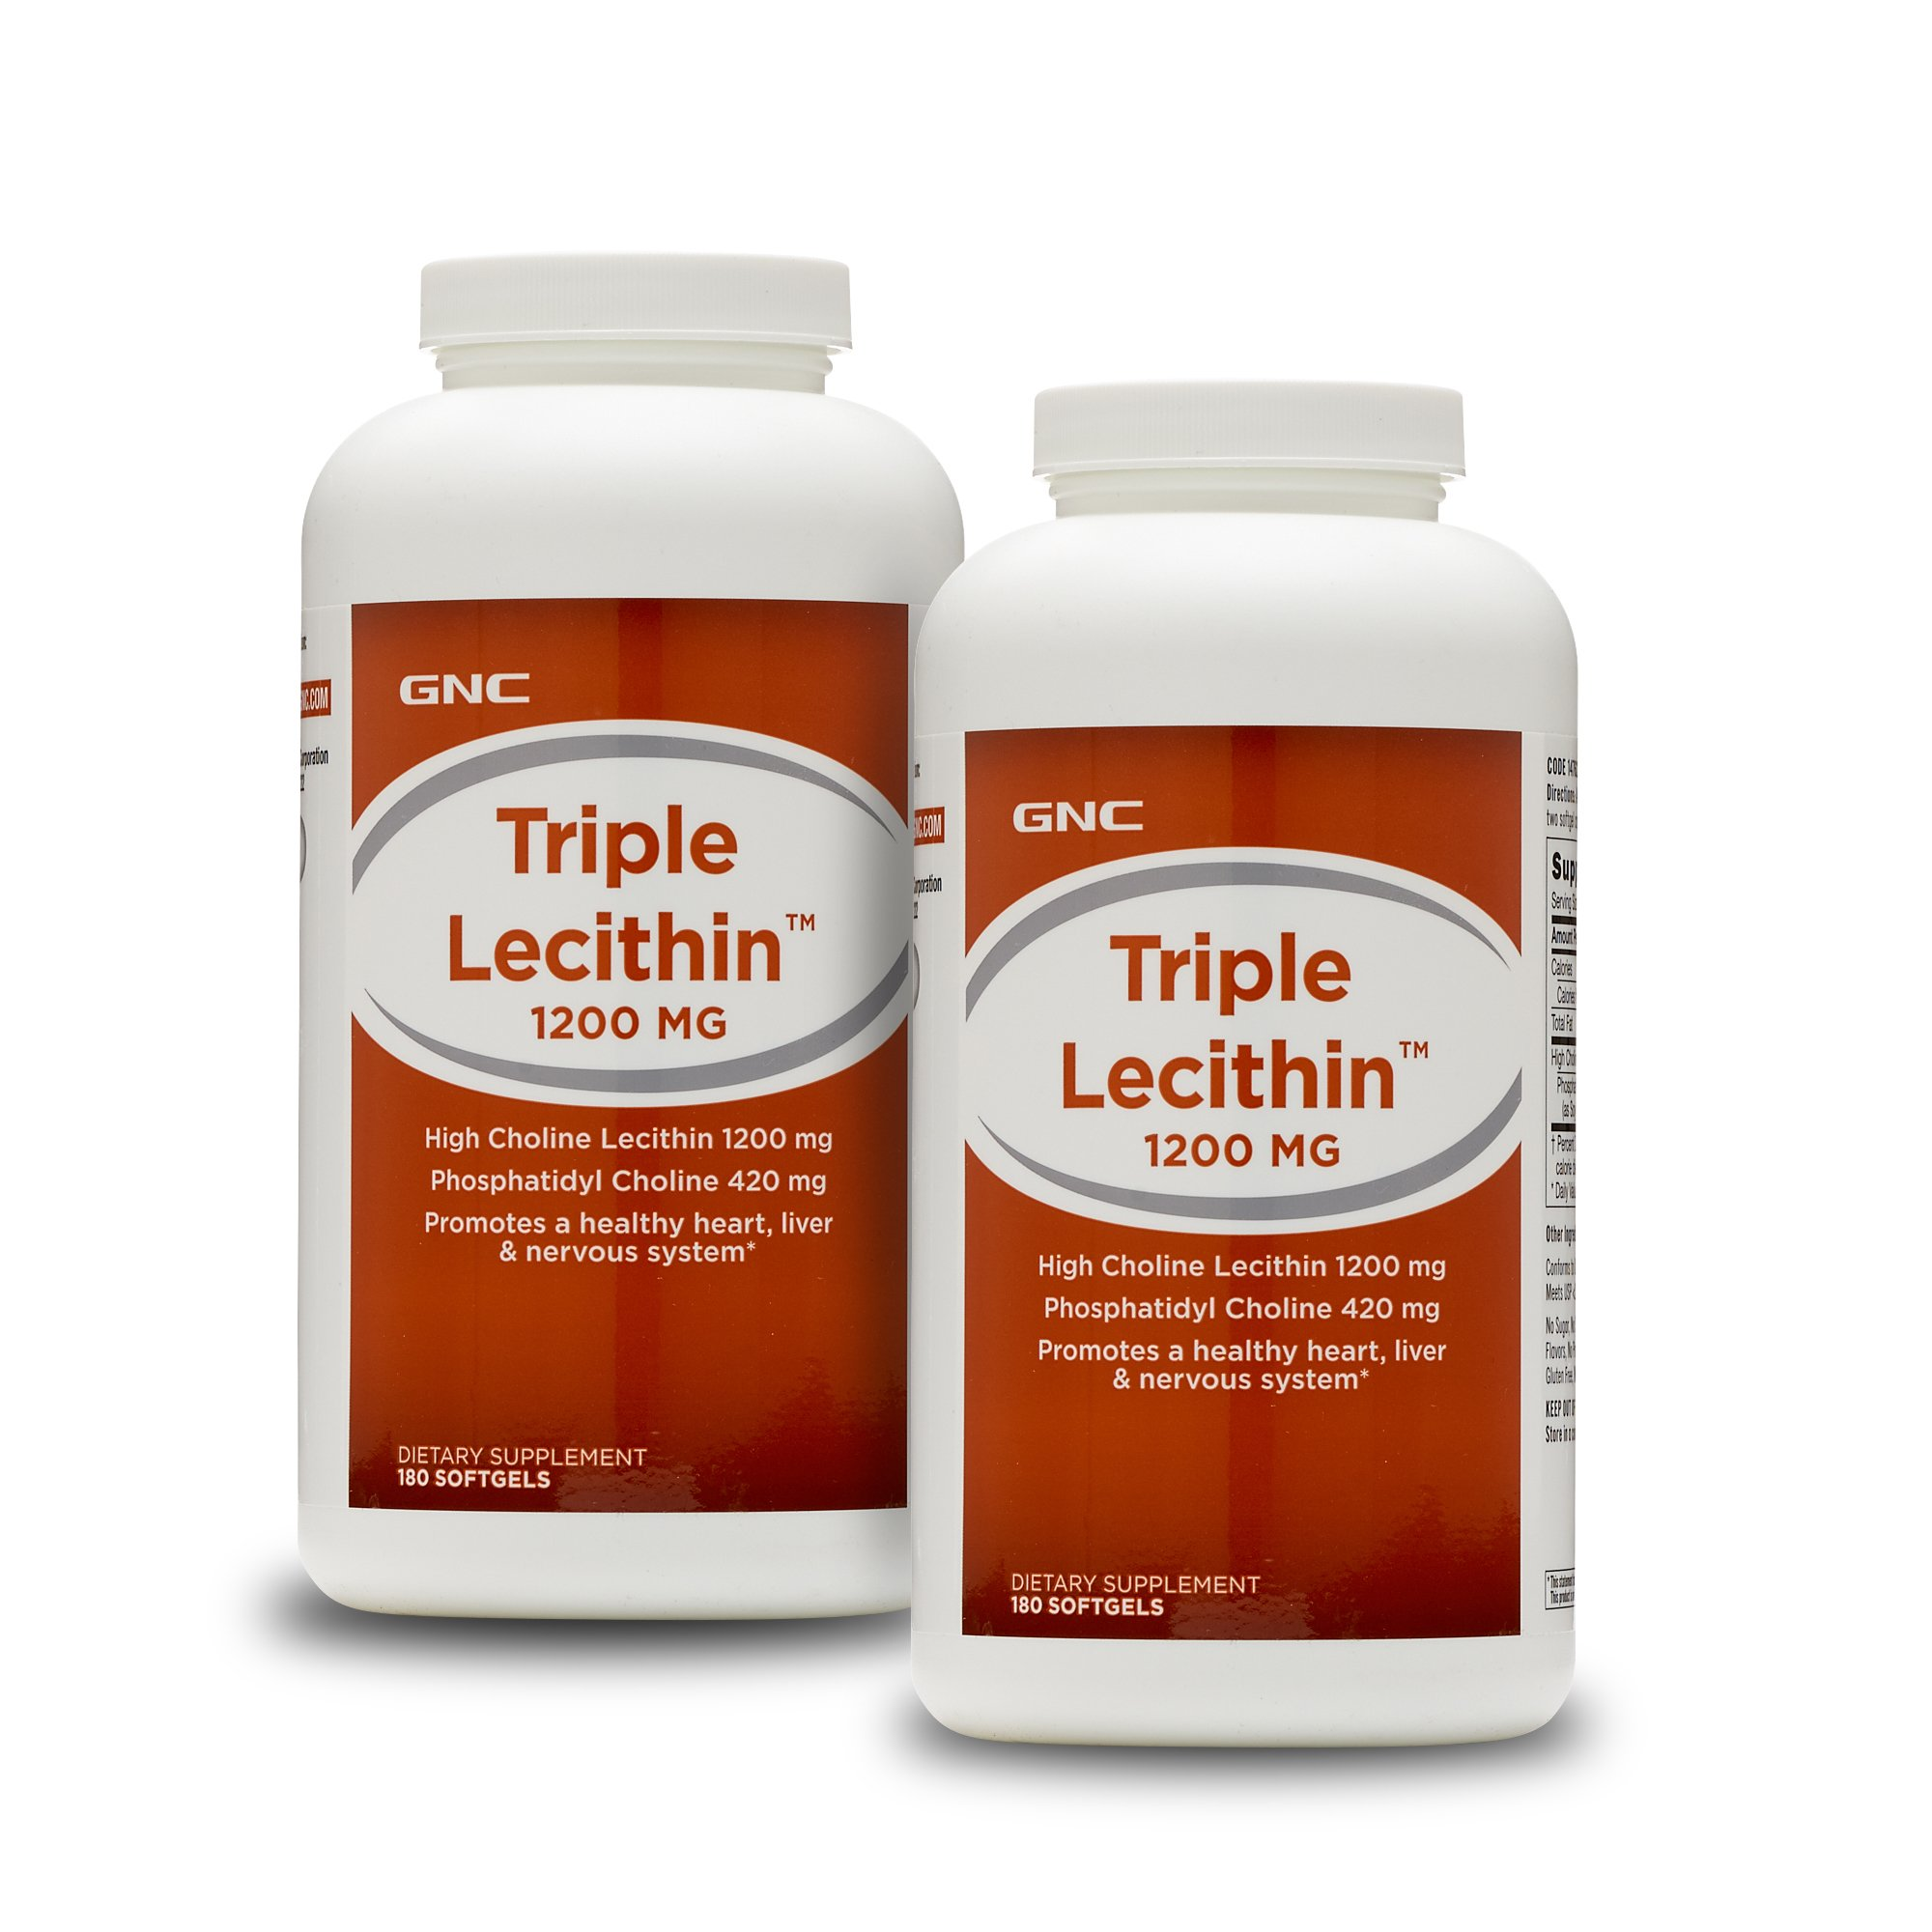 GNC Triple Lecithin 1200 MG Twin Pack by GNC (Image #1)